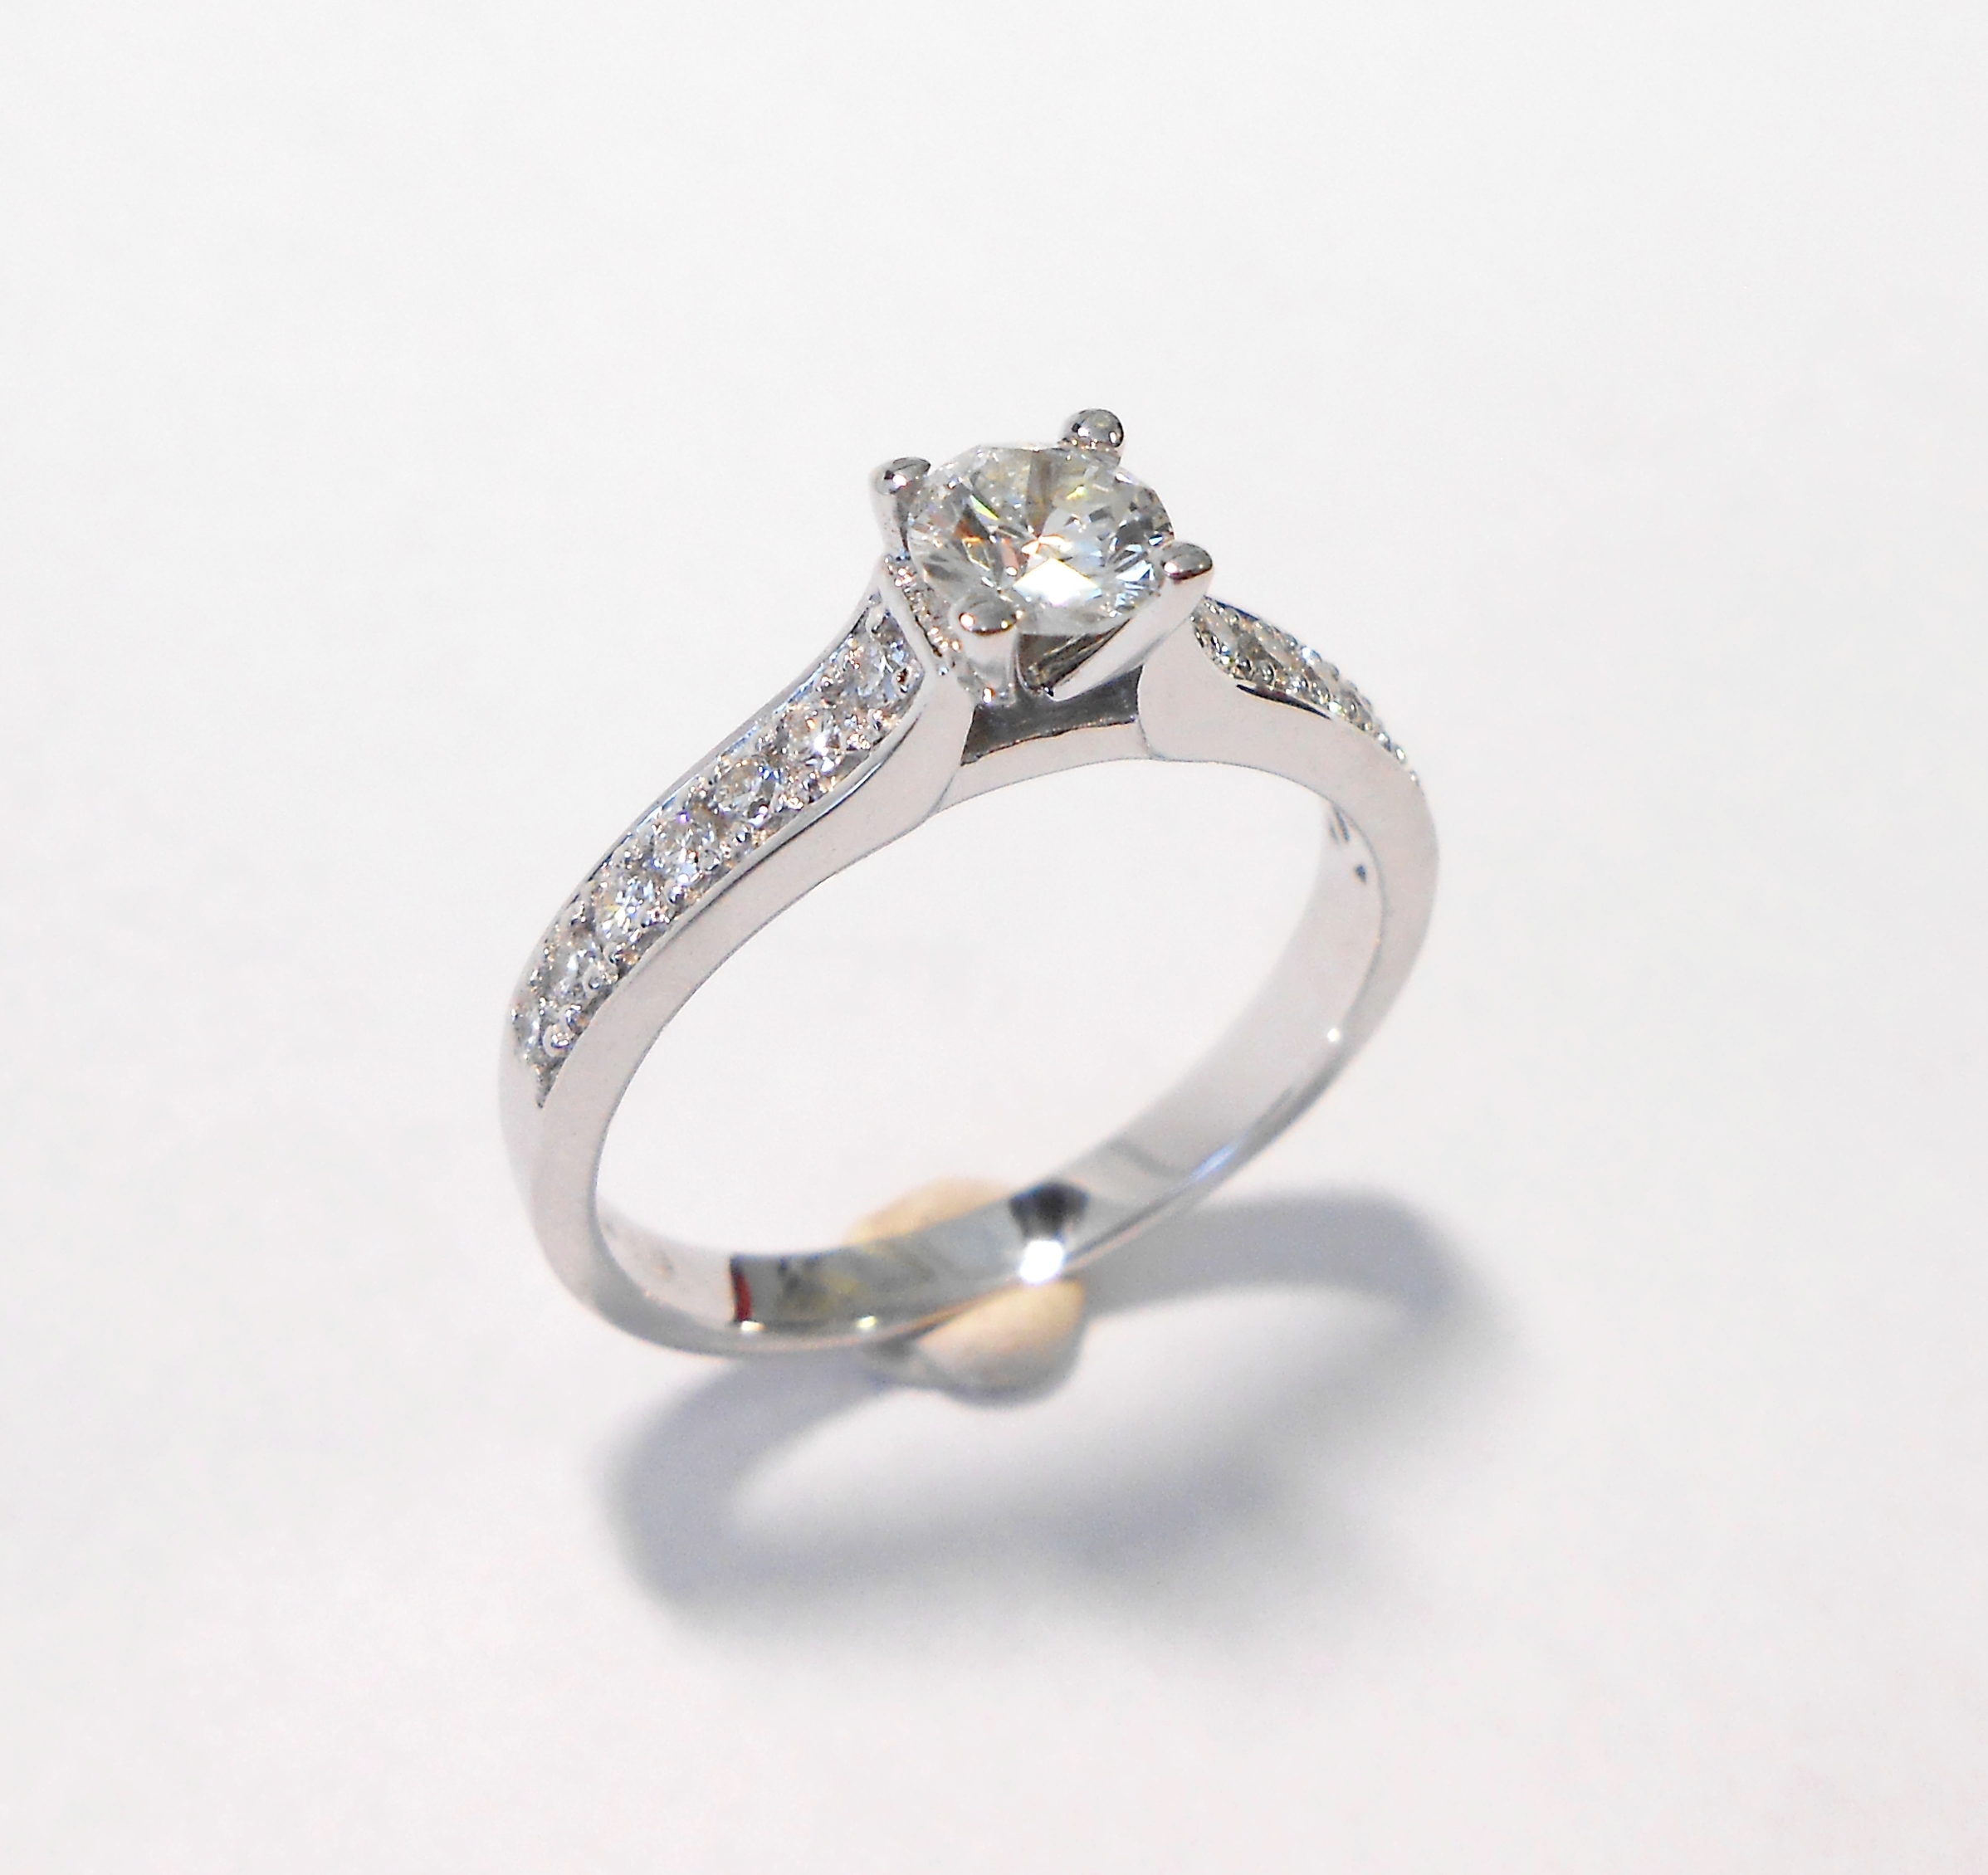 Diamond Ring Specials Cape Town